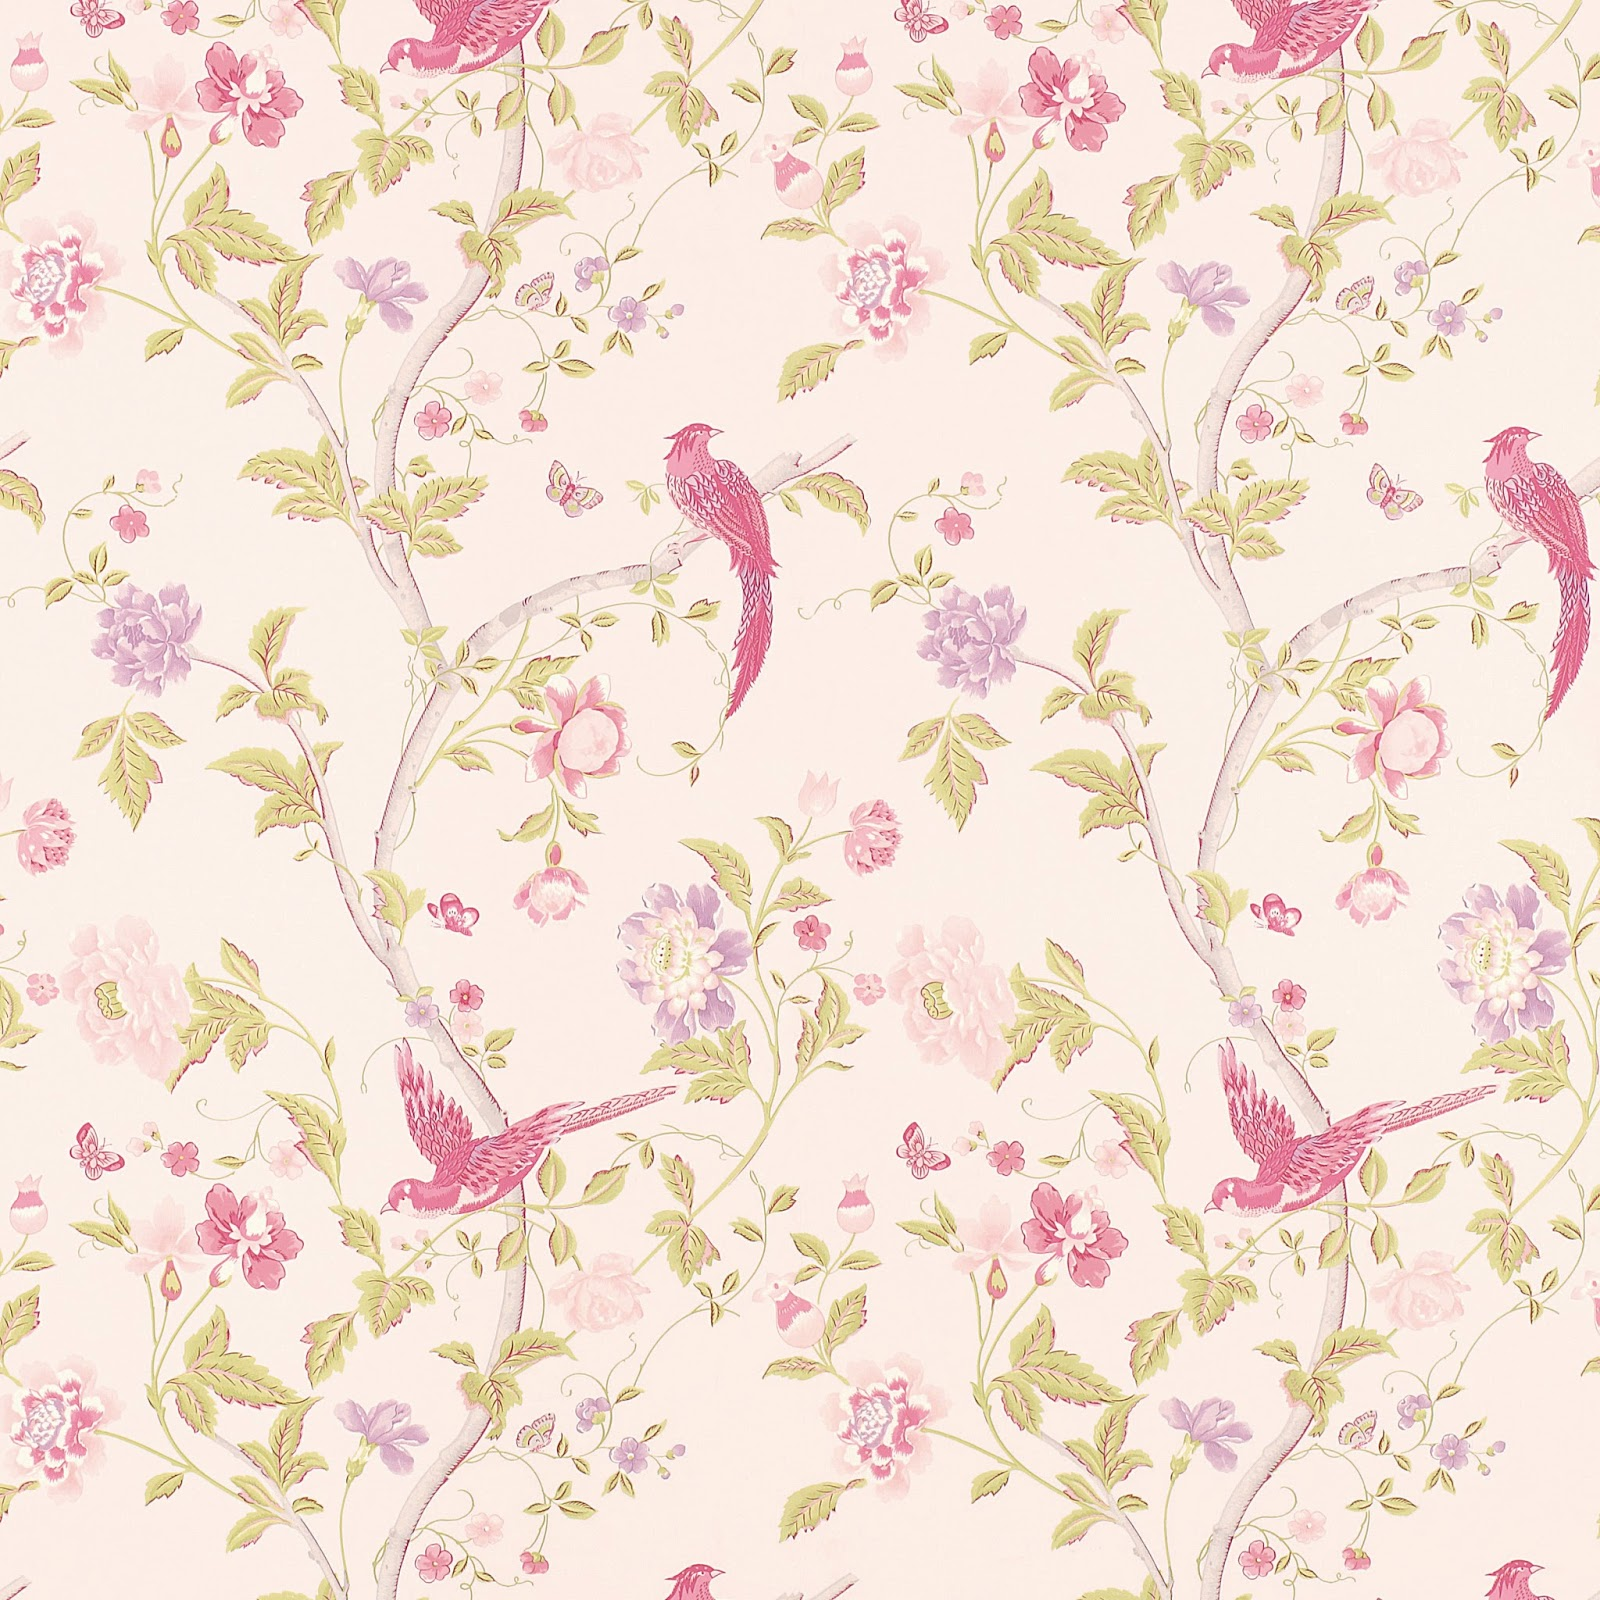 Free Download Floral Wallpaper Vintage Floral Wallpaper Pink